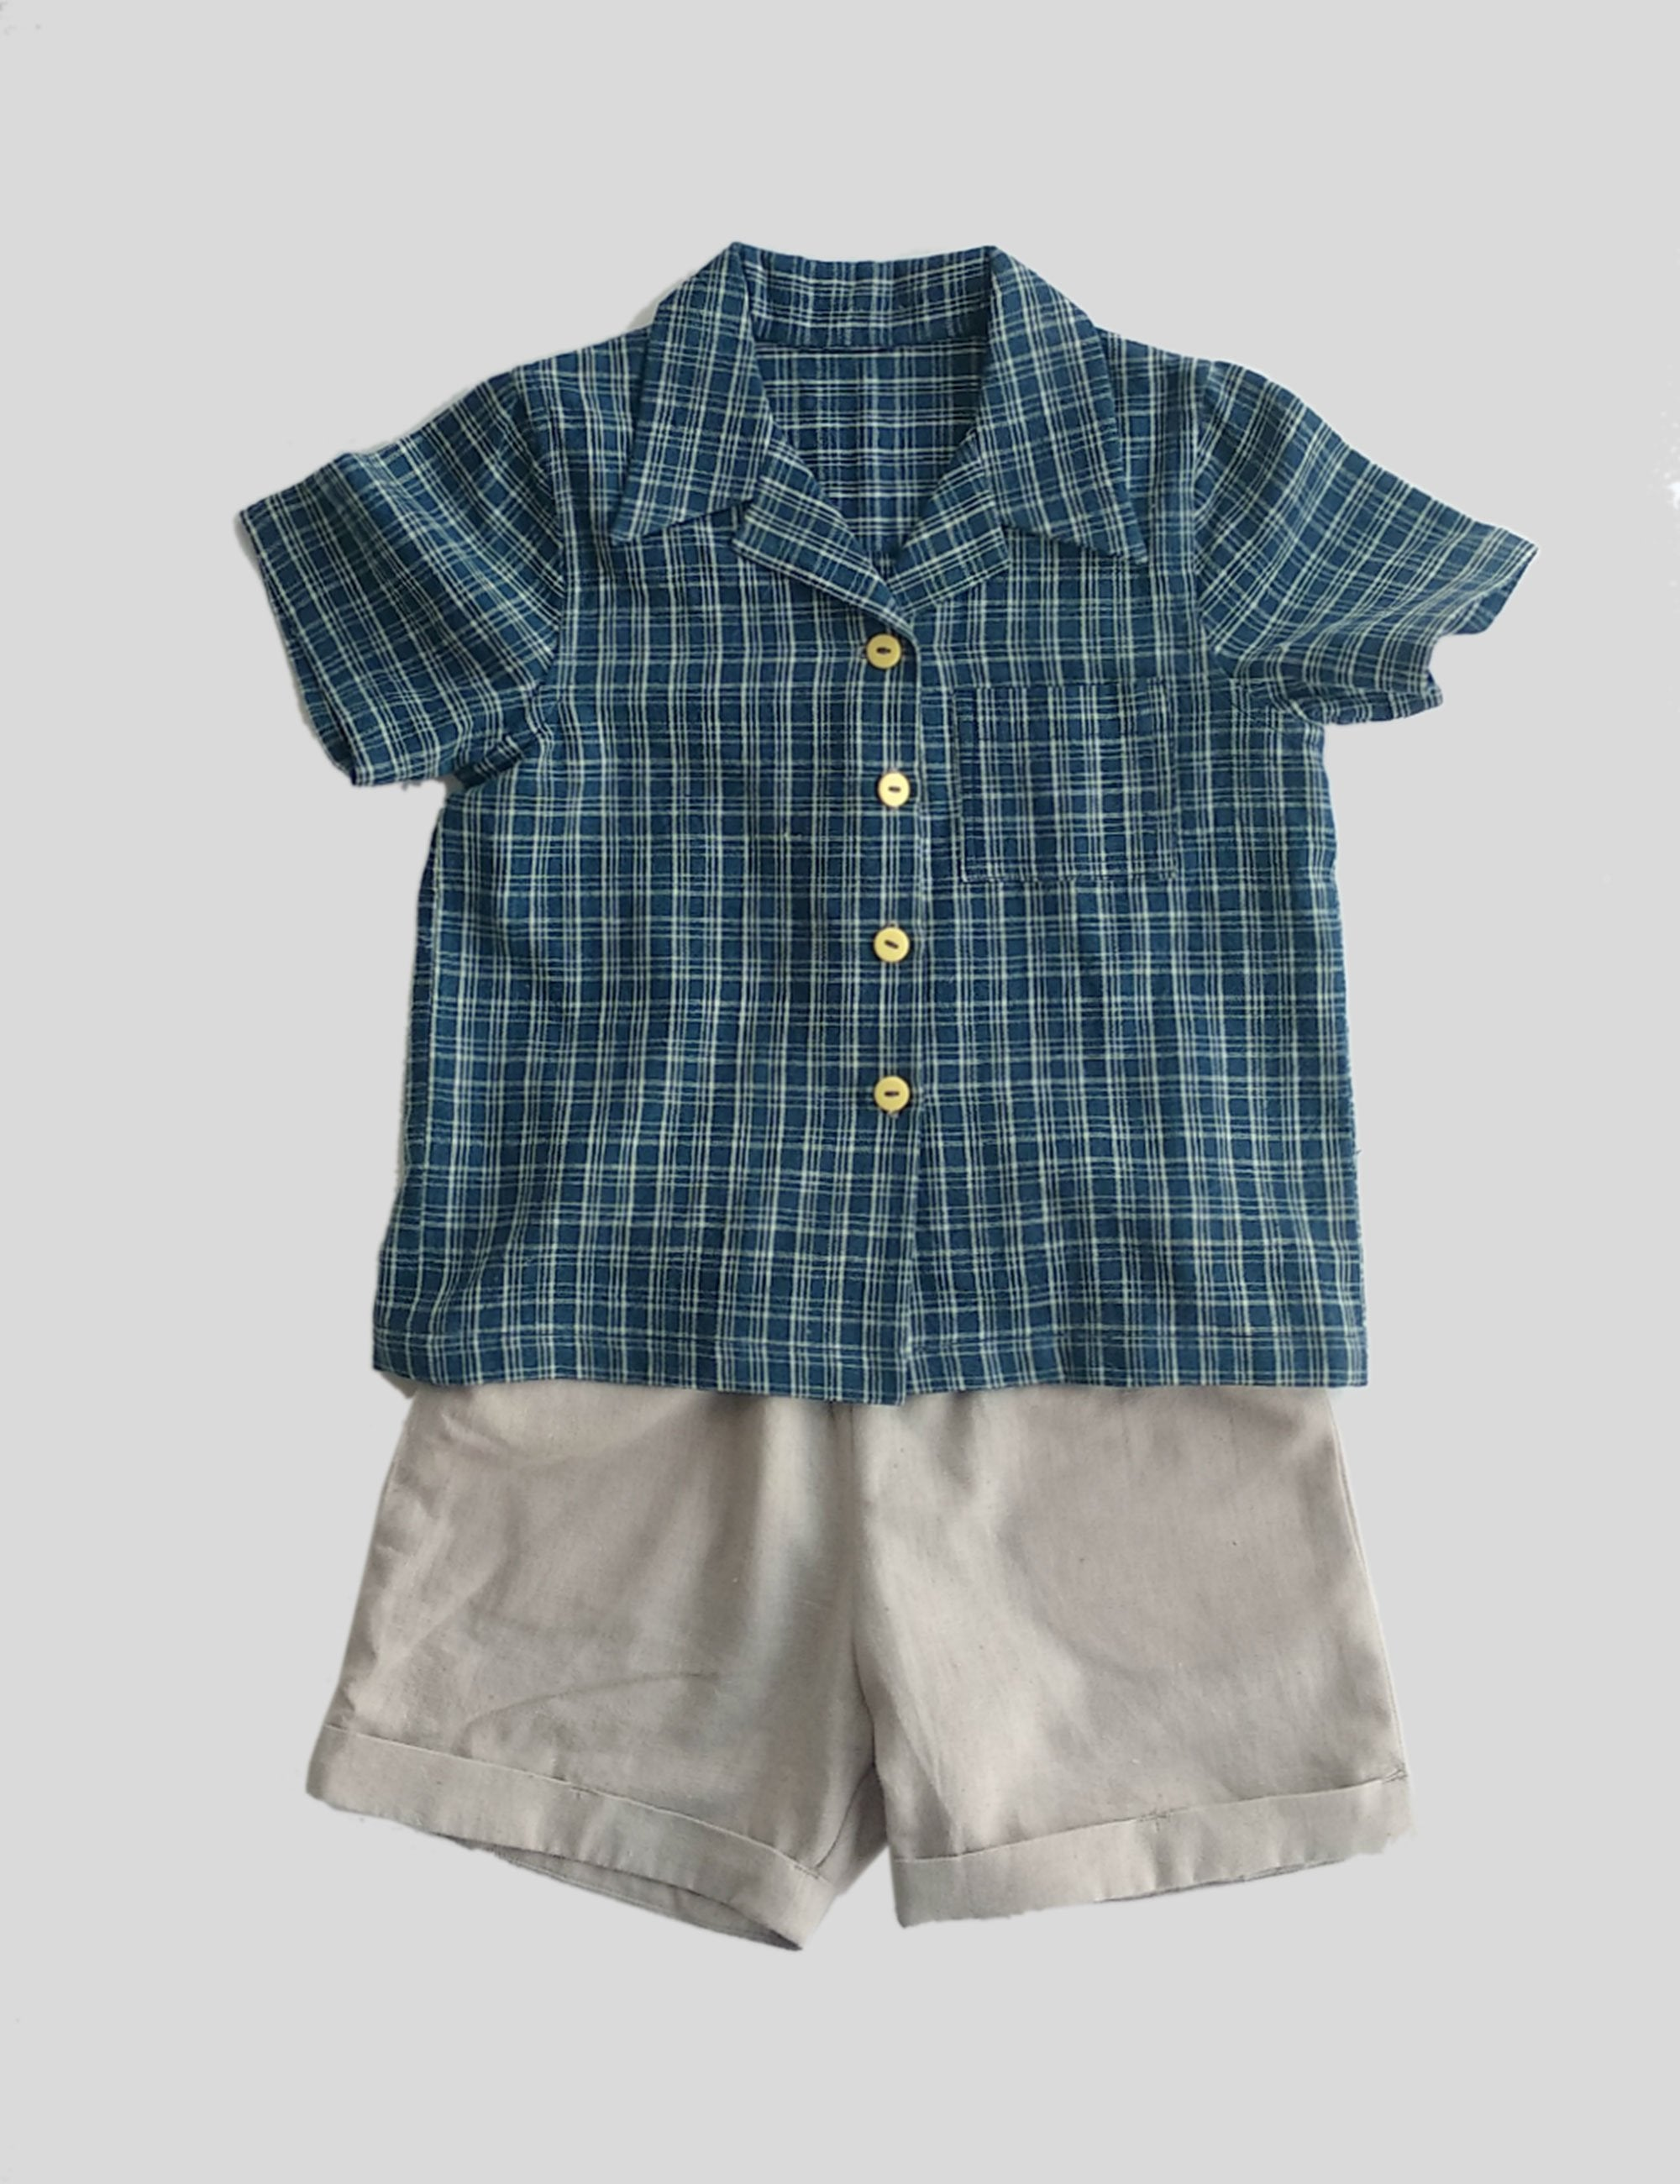 Convertible Collar Shirt Set with Half Sleeves in Indigo with Grey Shorts for Boys